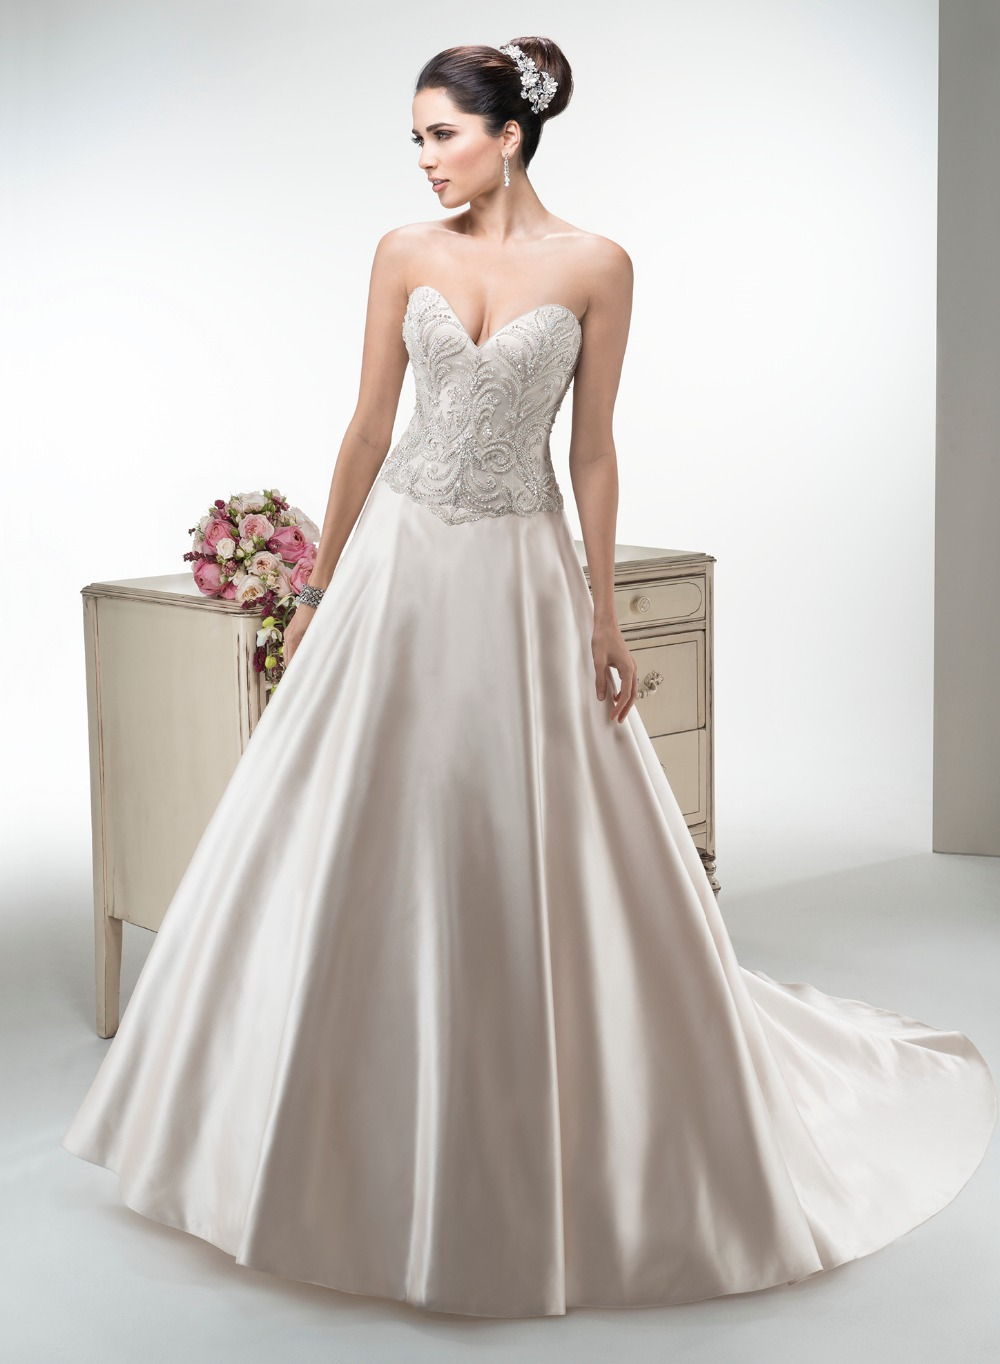 Sexy bling a line wedding dress satin 2015 custom elegant for Satin a line wedding dress